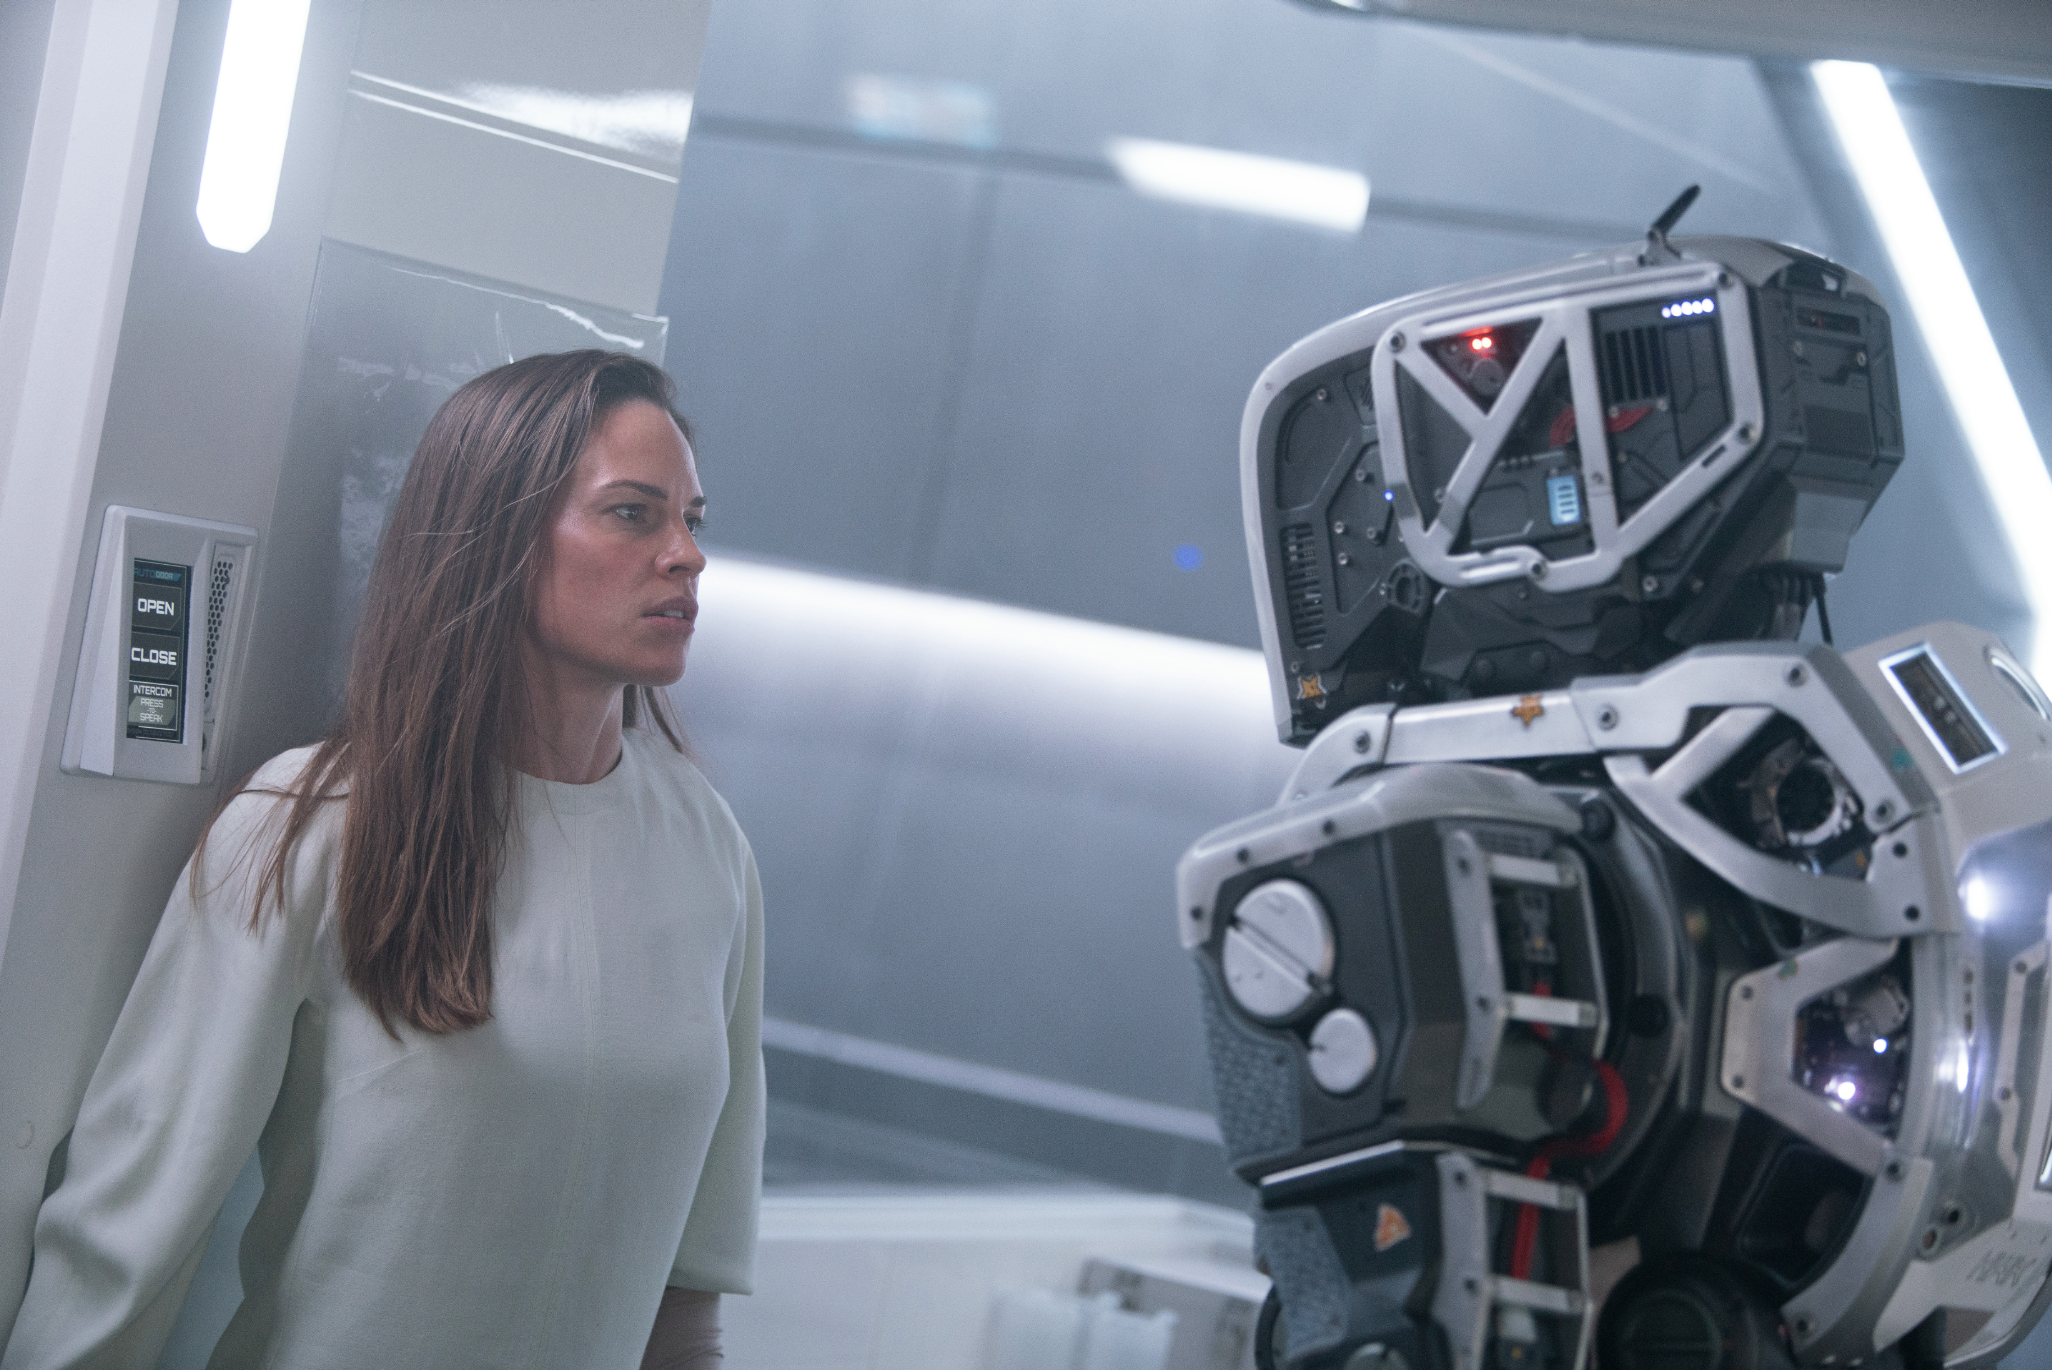 Hilary Swank's character is up against a wall, looking scared of 'Mother' Android